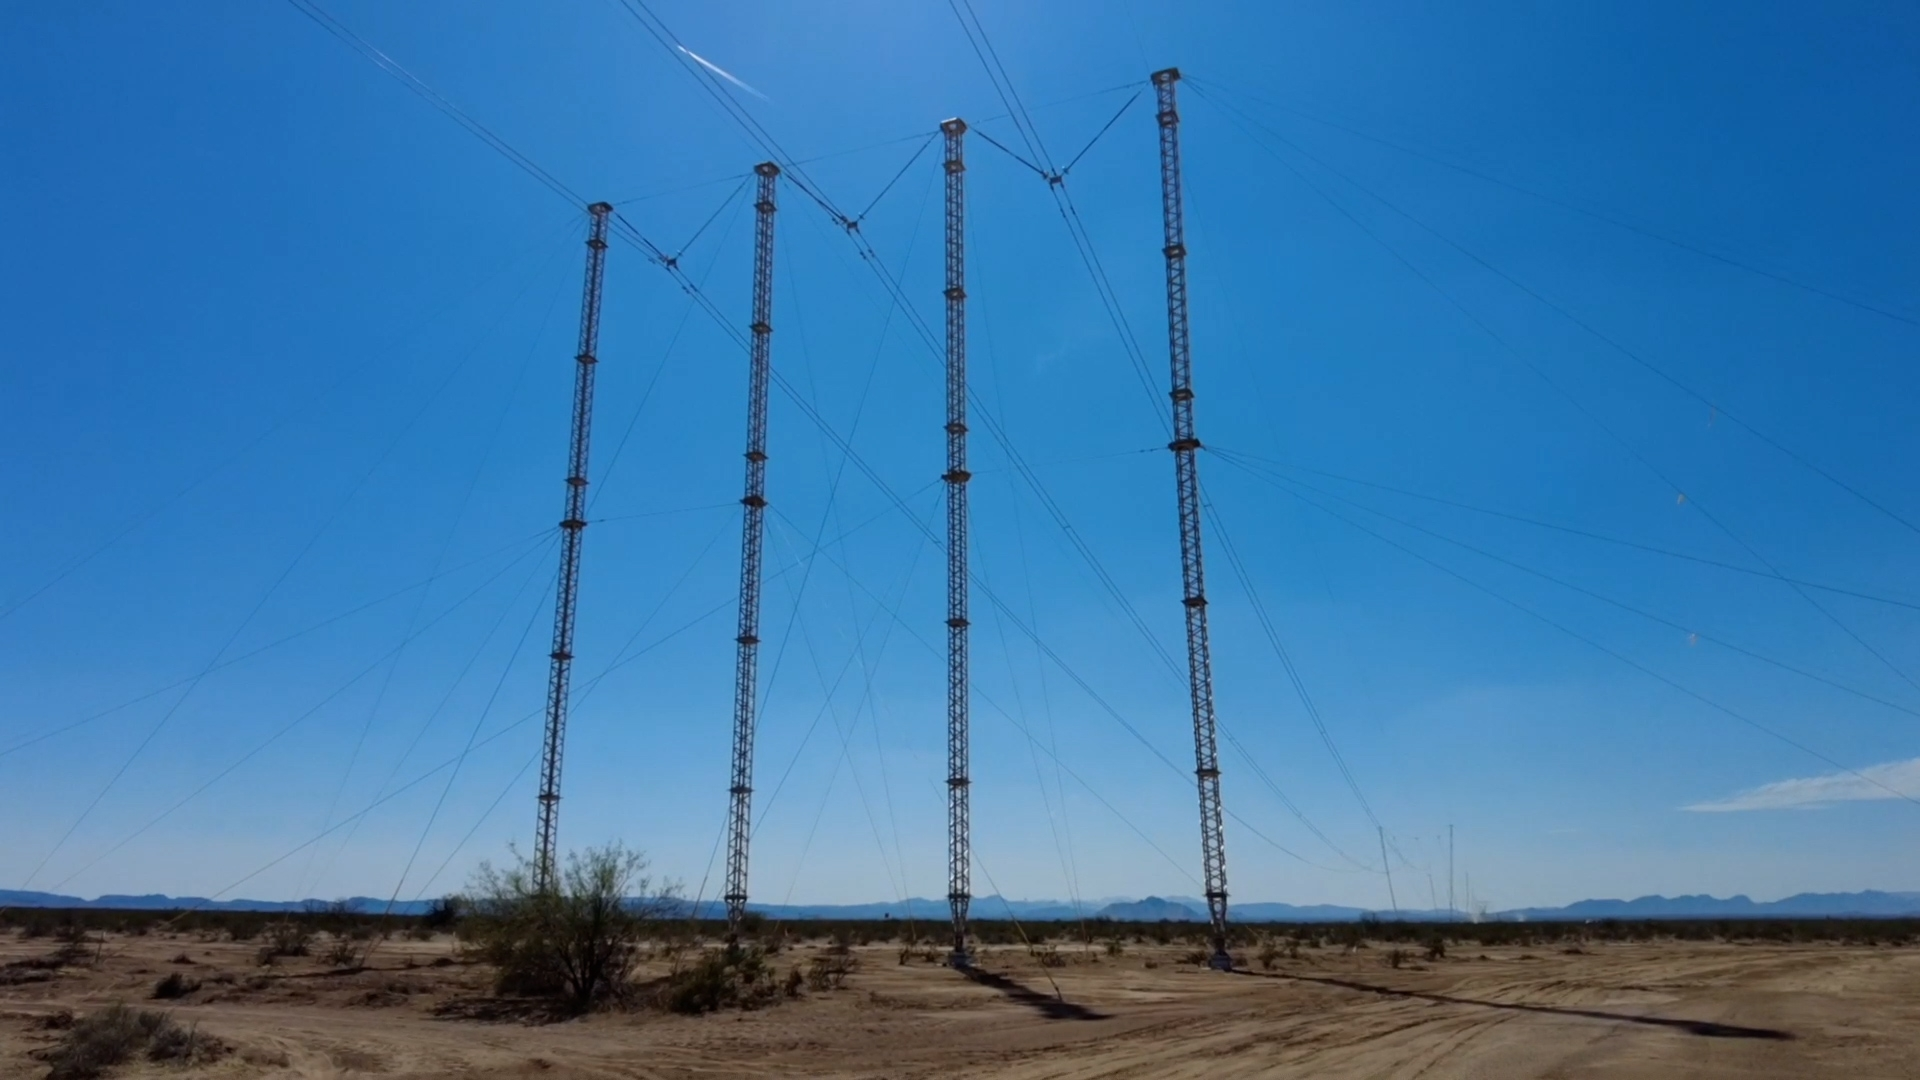 The completed and energized Lindsey towers, safely restoring power to SCE's customers.